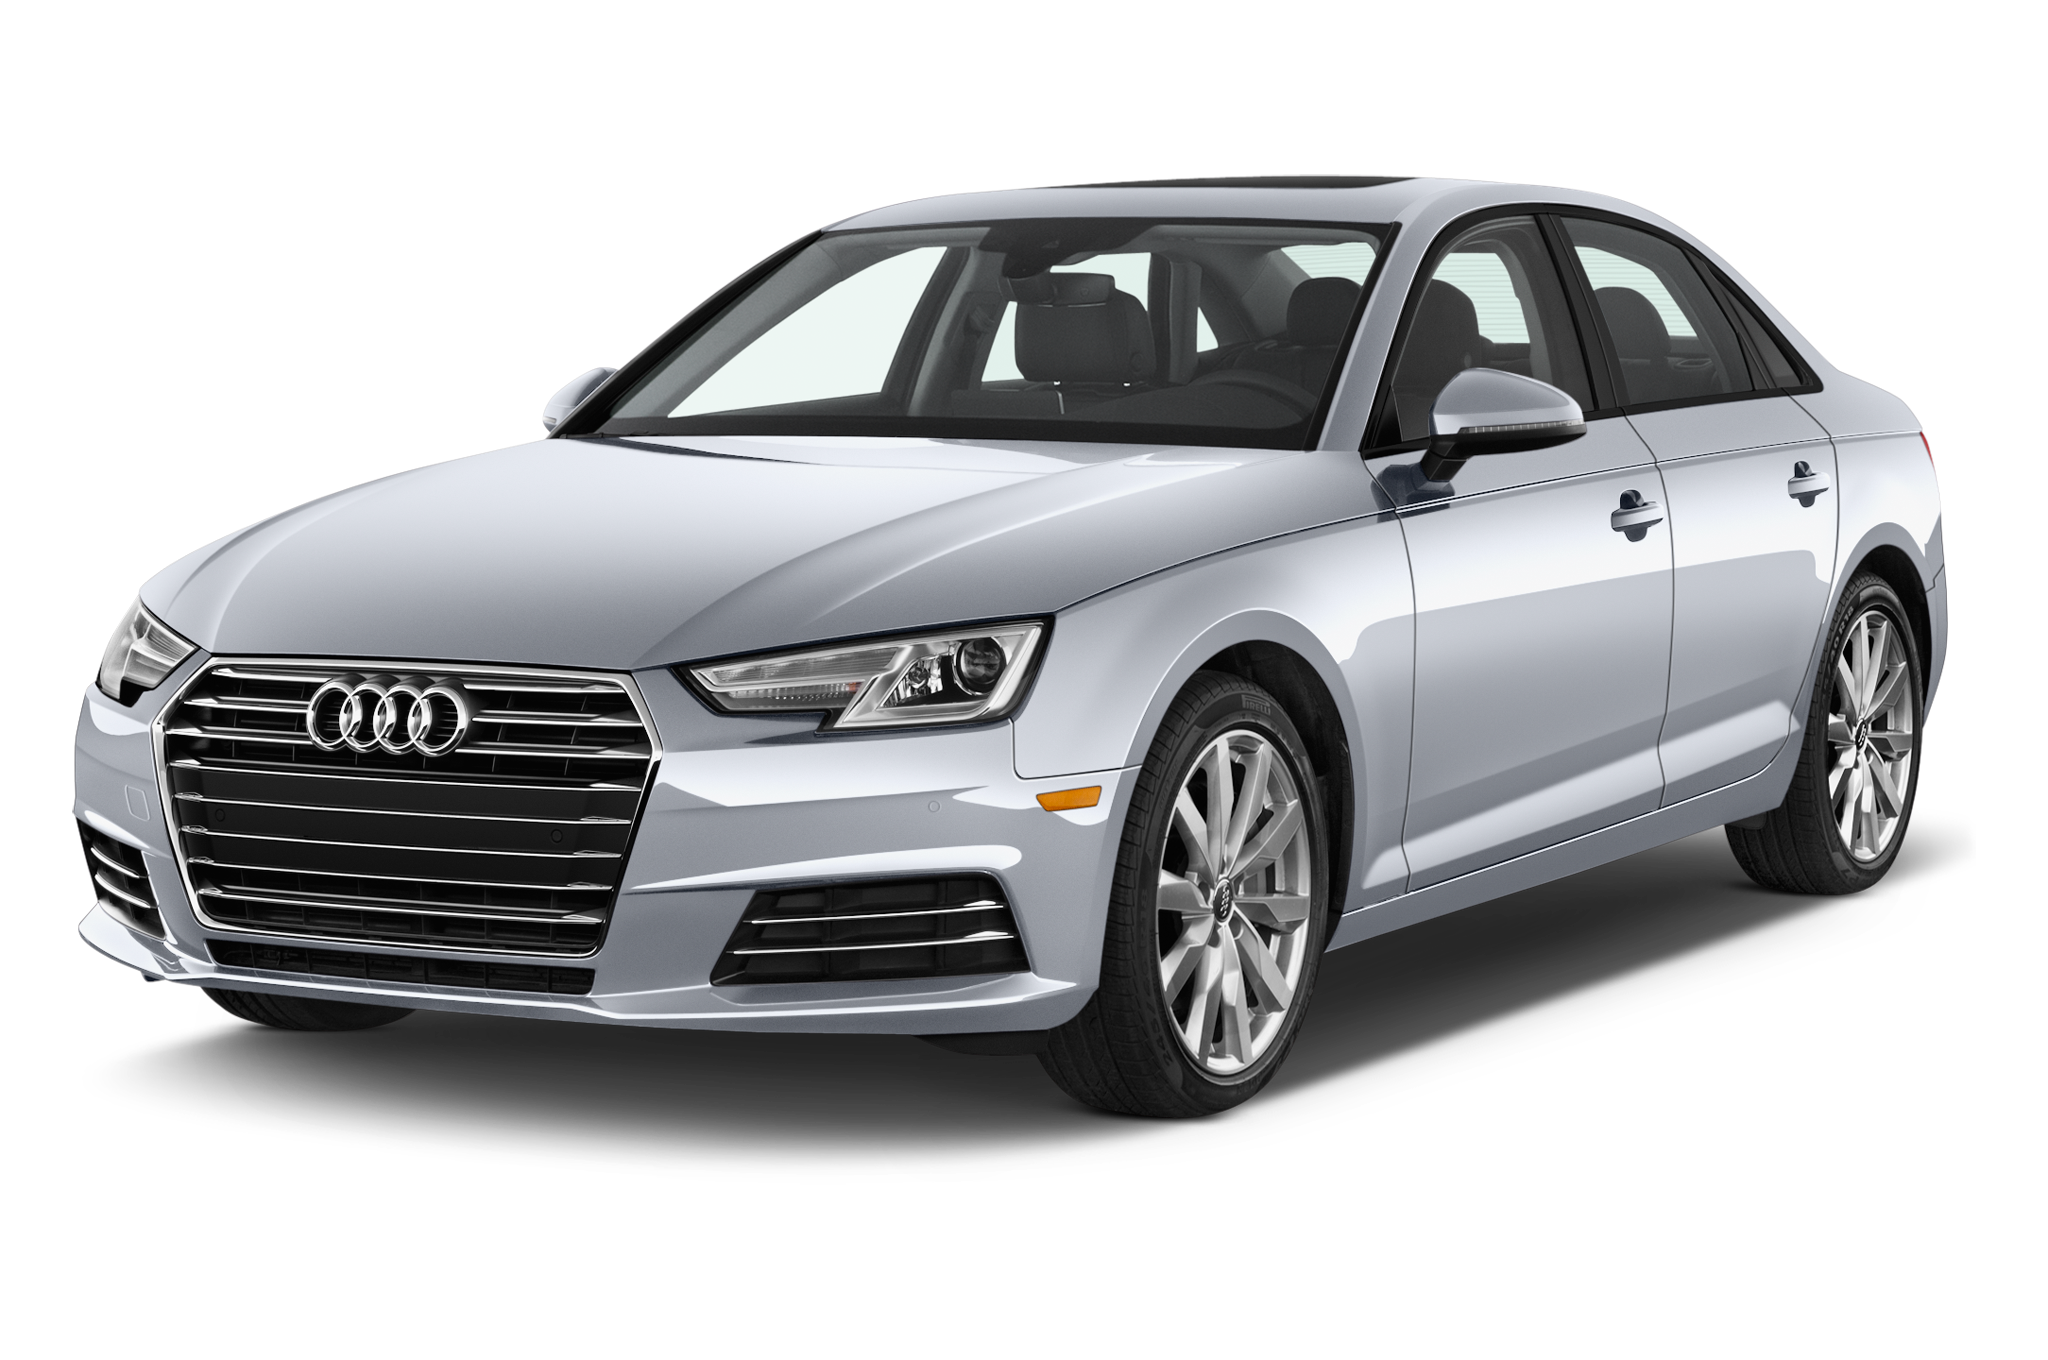 Audi car clipart black and white 2017 Audi A4 Reviews and Rating | Motor Trend Canada black and white